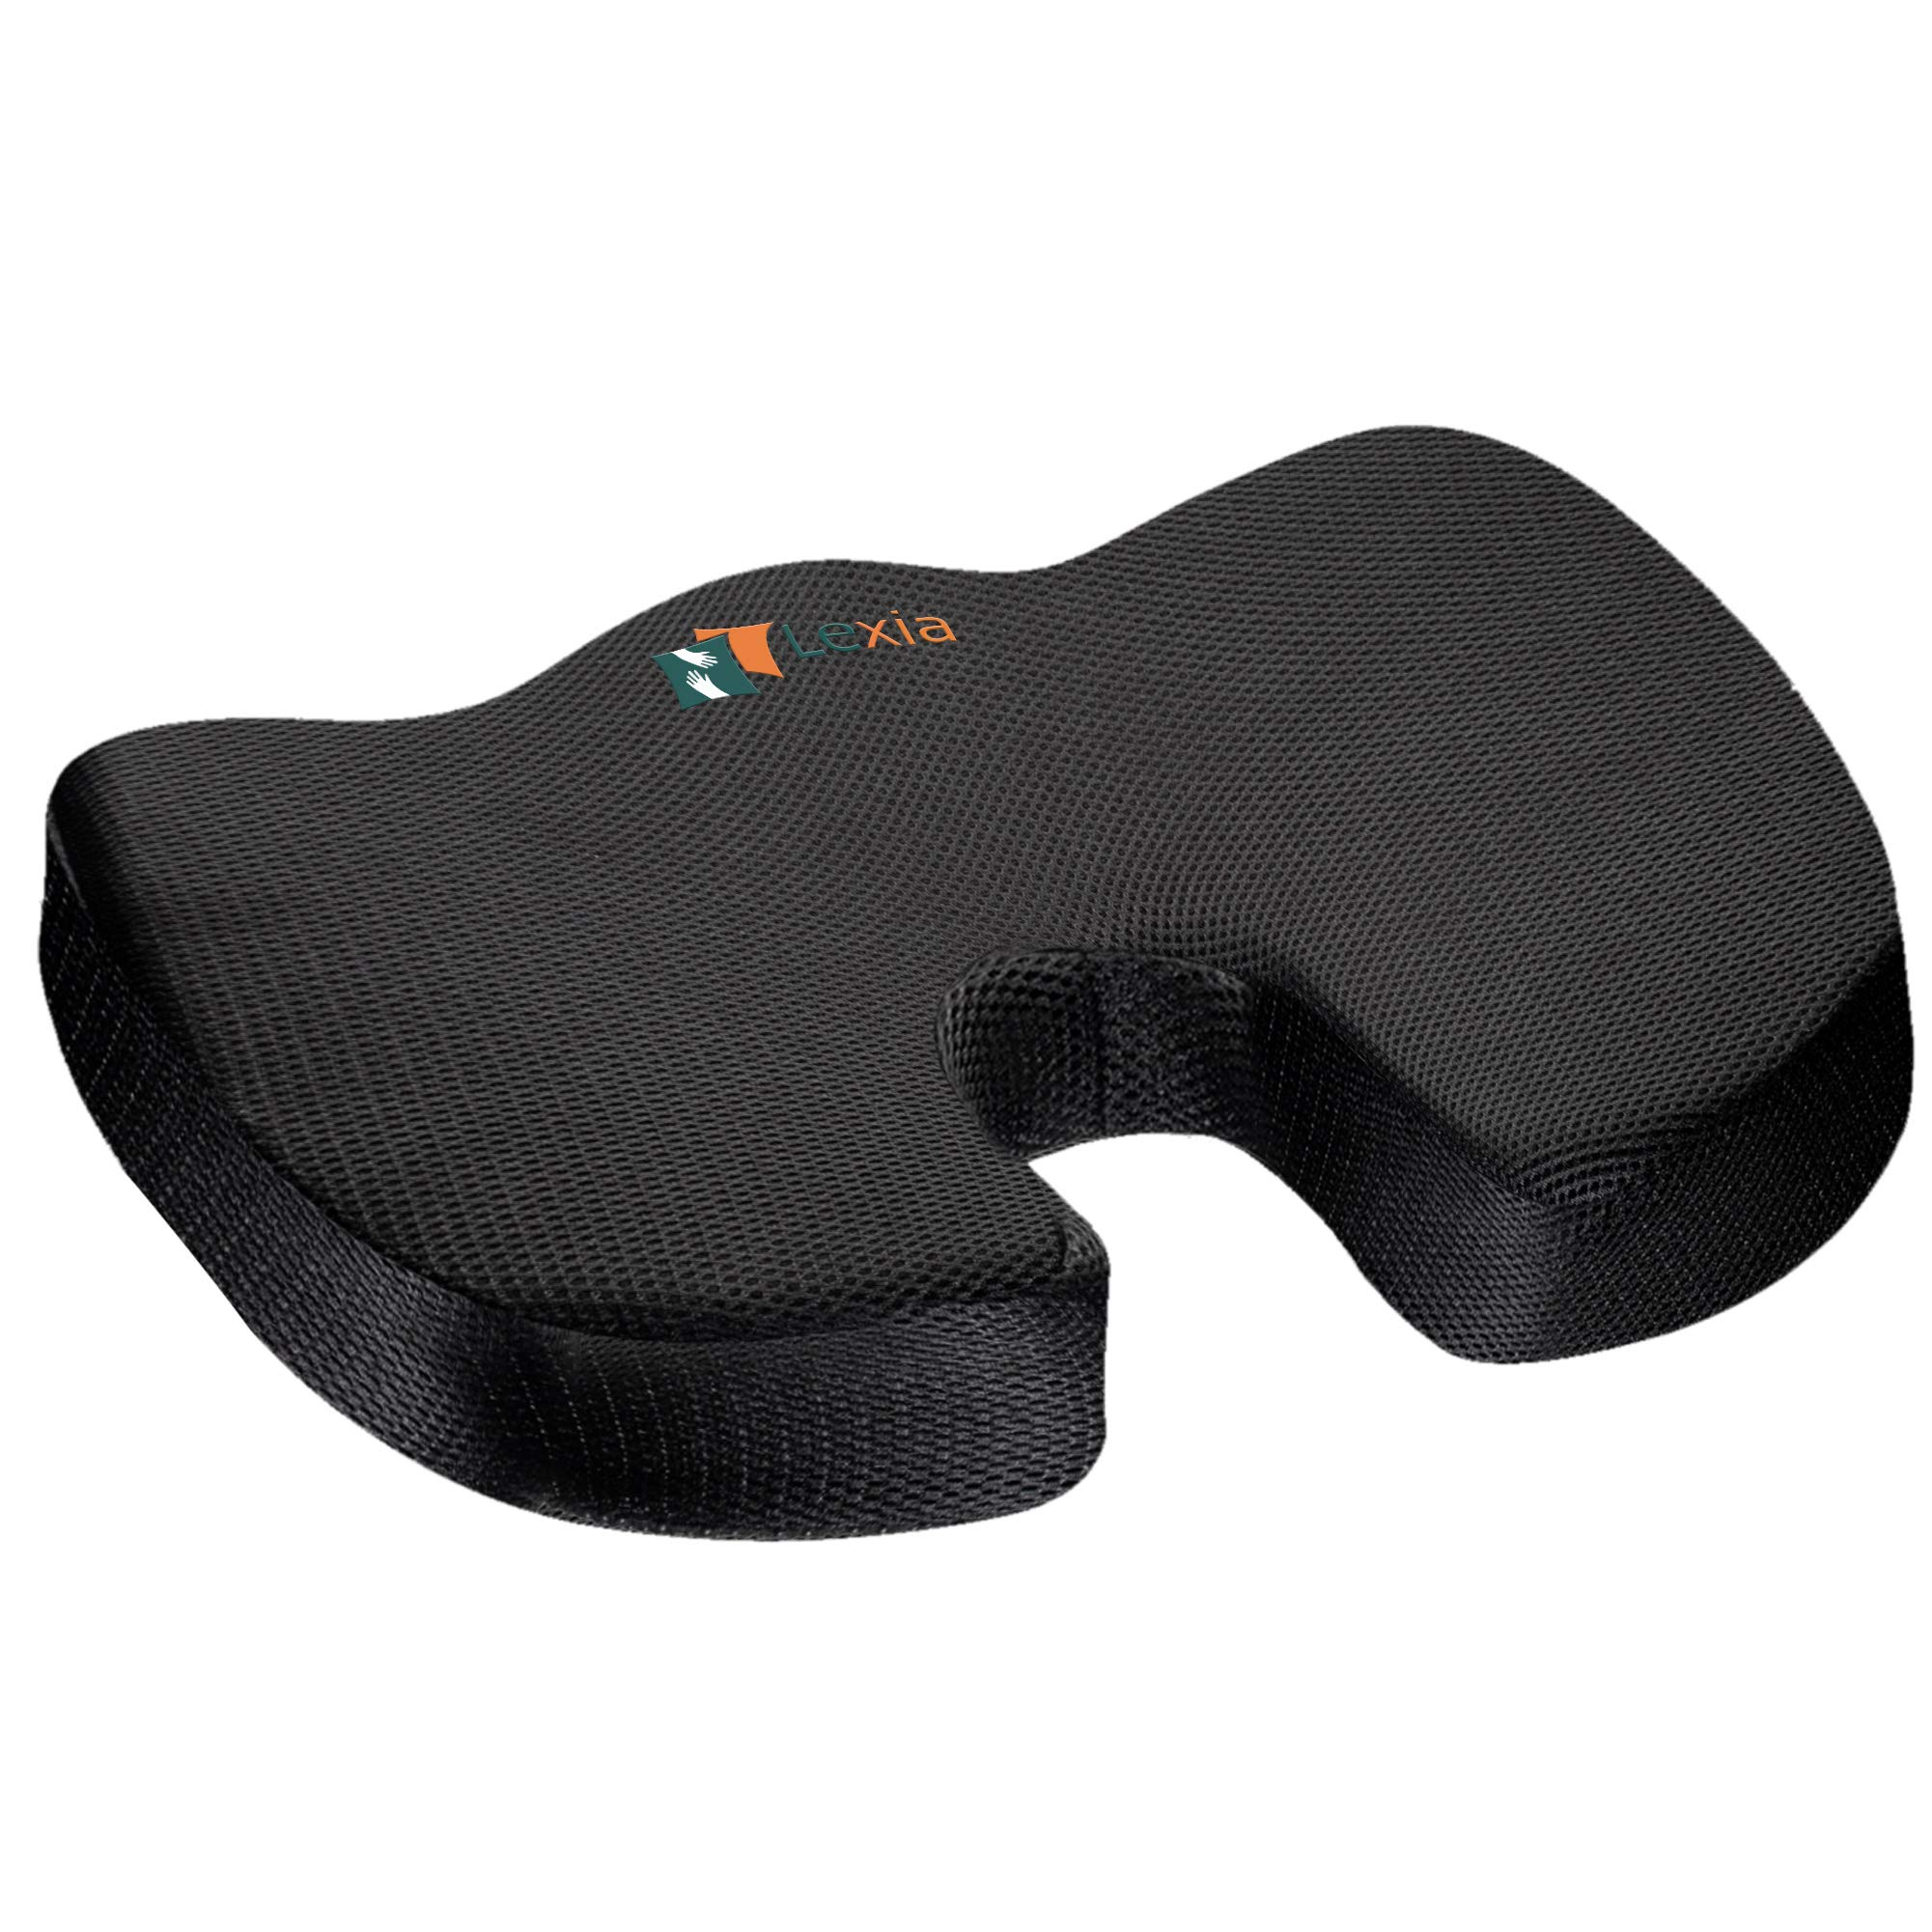 Coccyx Seat Cushion Pillow Orthopedic | Memory Foam Chair Pillow | Relieves Back, Tailbone, Sciatica Nerve Pain | Premium Comfort for Home, Office, Car or Event Seating by Lexia